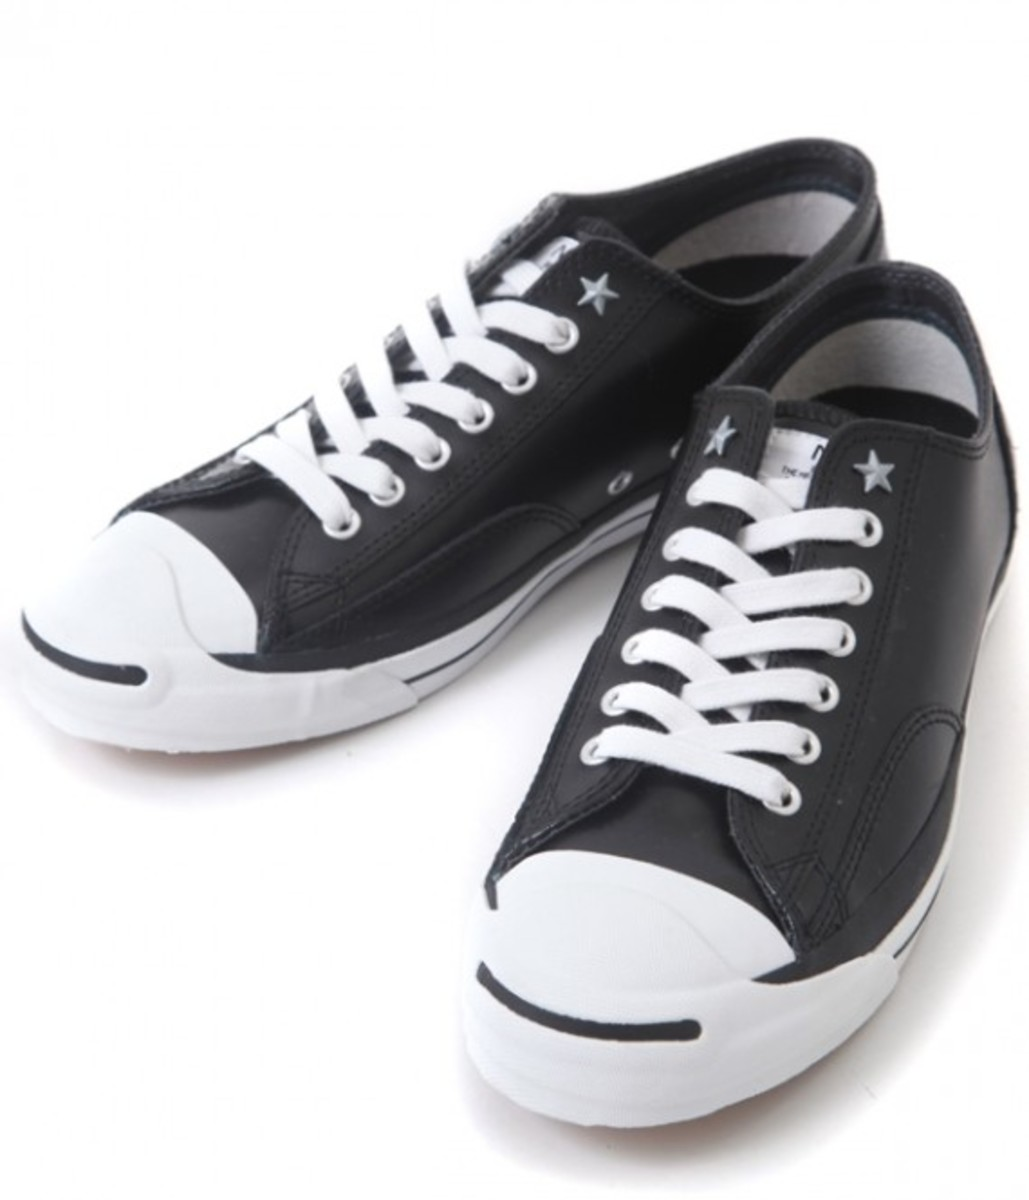 Mike Jack Purcell 2